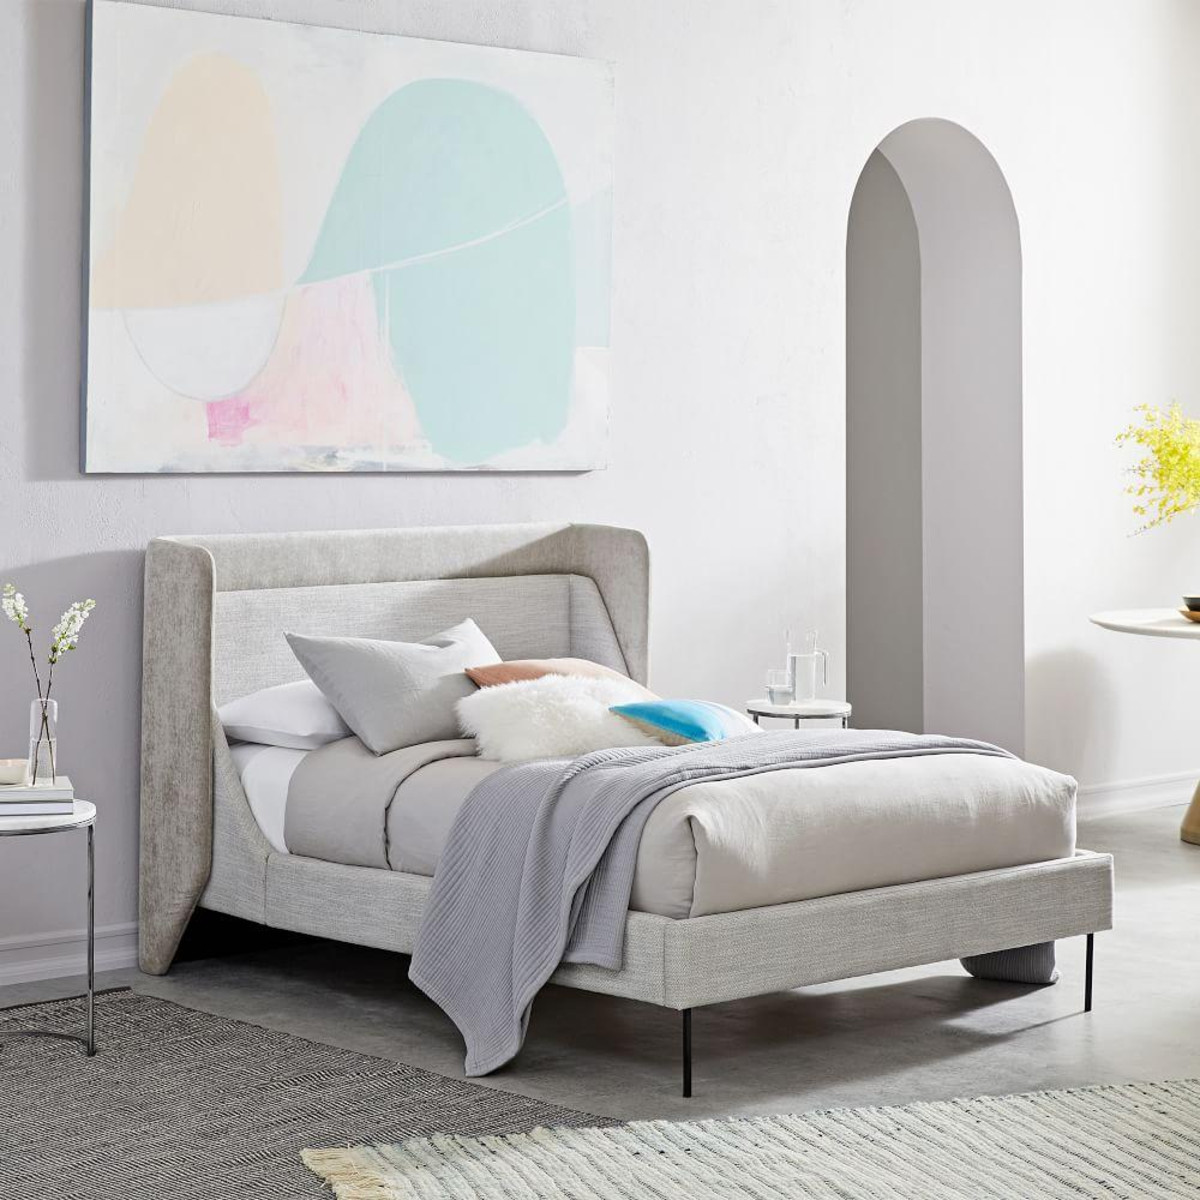 Thea wing bed by West Elm